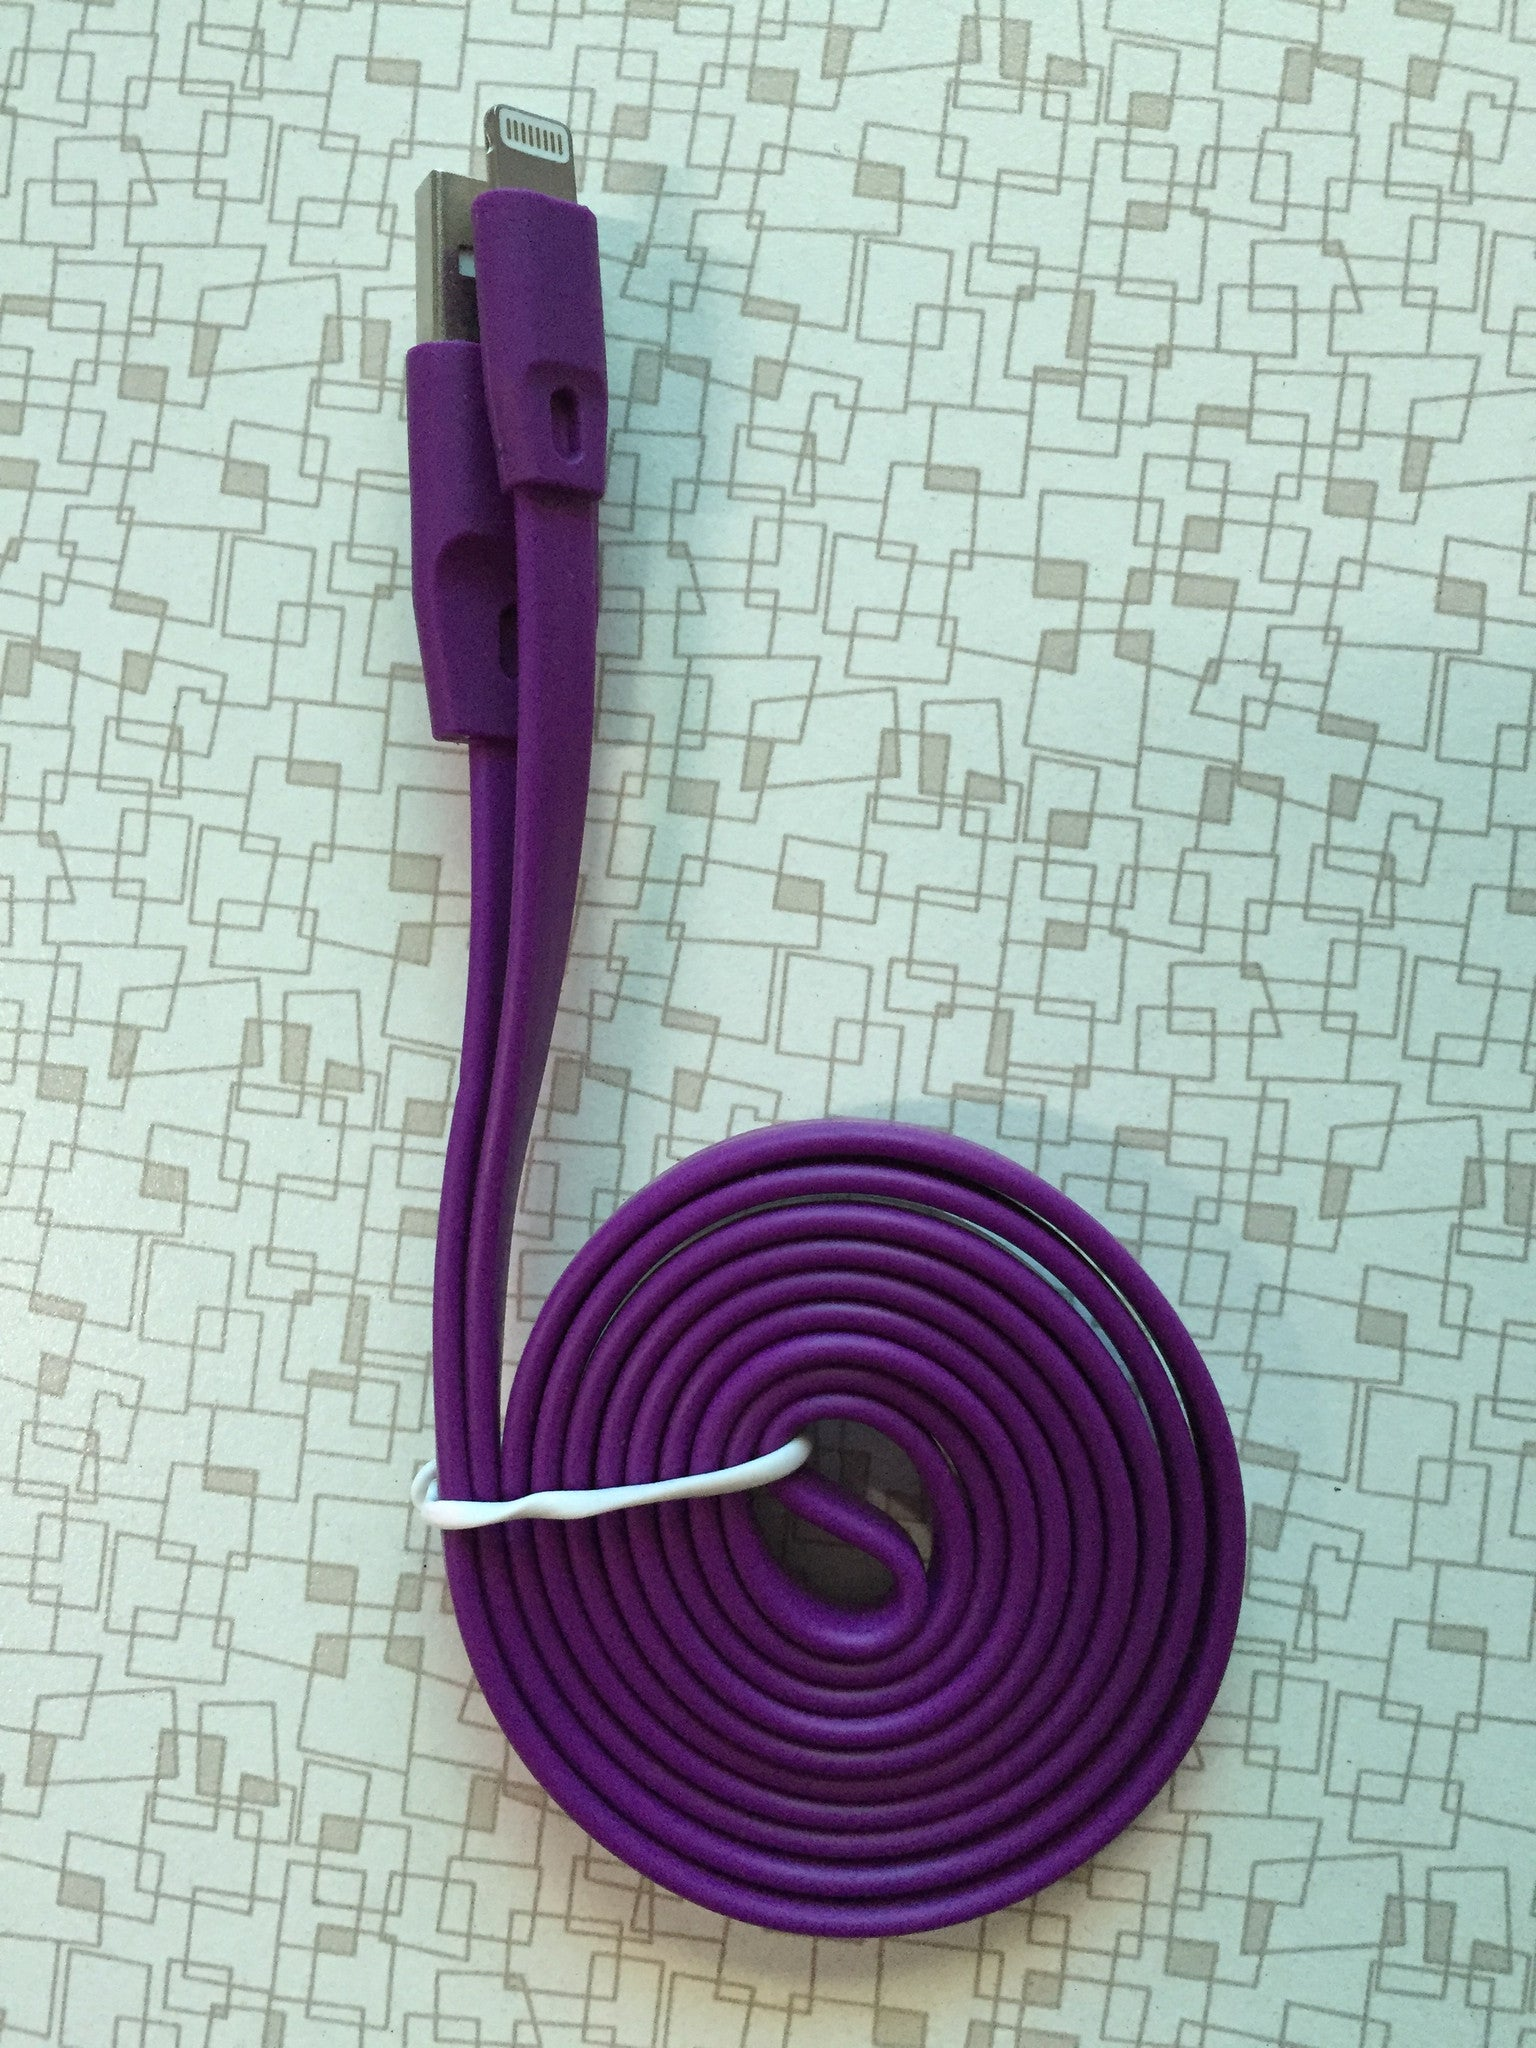 CANDO_-_ACCESSORIES_-_S004_MFI_SYNC_CABLE_I_PHONE5.jpg?v=1527258278